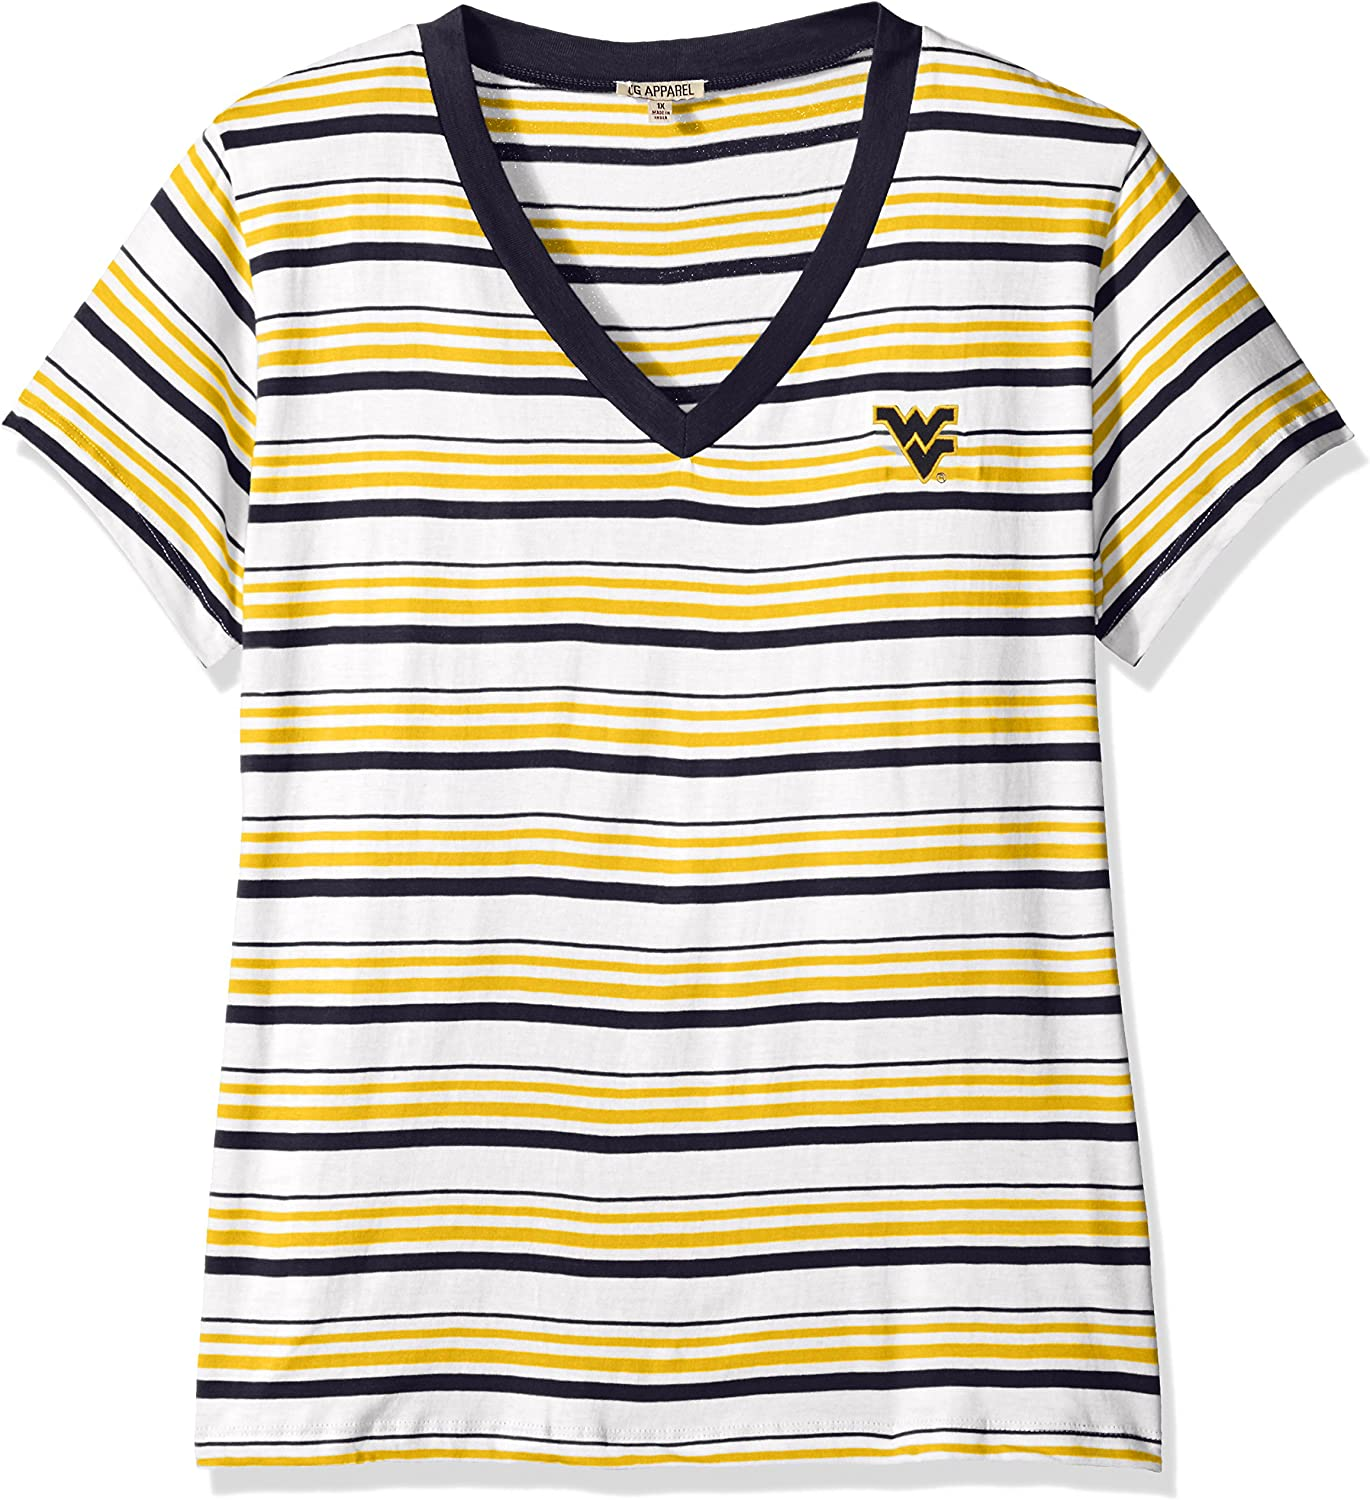 UG All stores are sold Apparel NCAA Women's T-Shirt Topics on TV Tailgate Striped